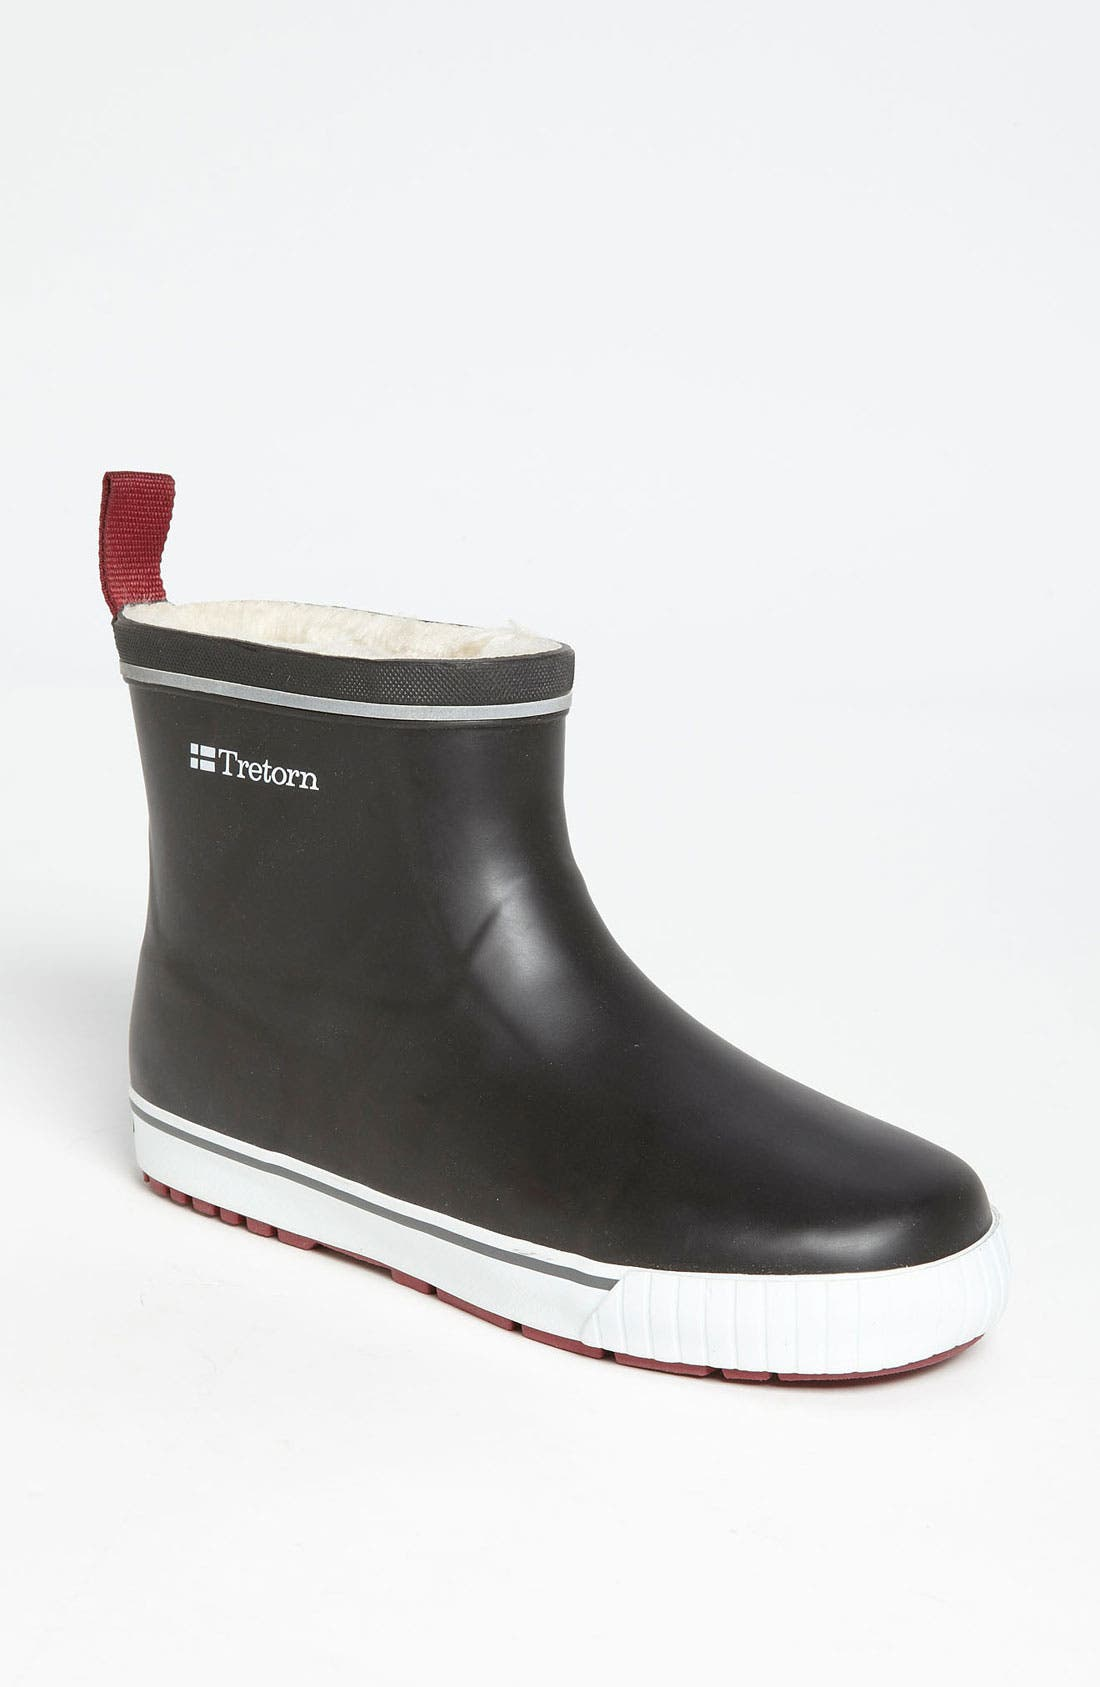 Main Image - Tretorn 'Skerry Spritz Vinter' Rain Boot (Women)